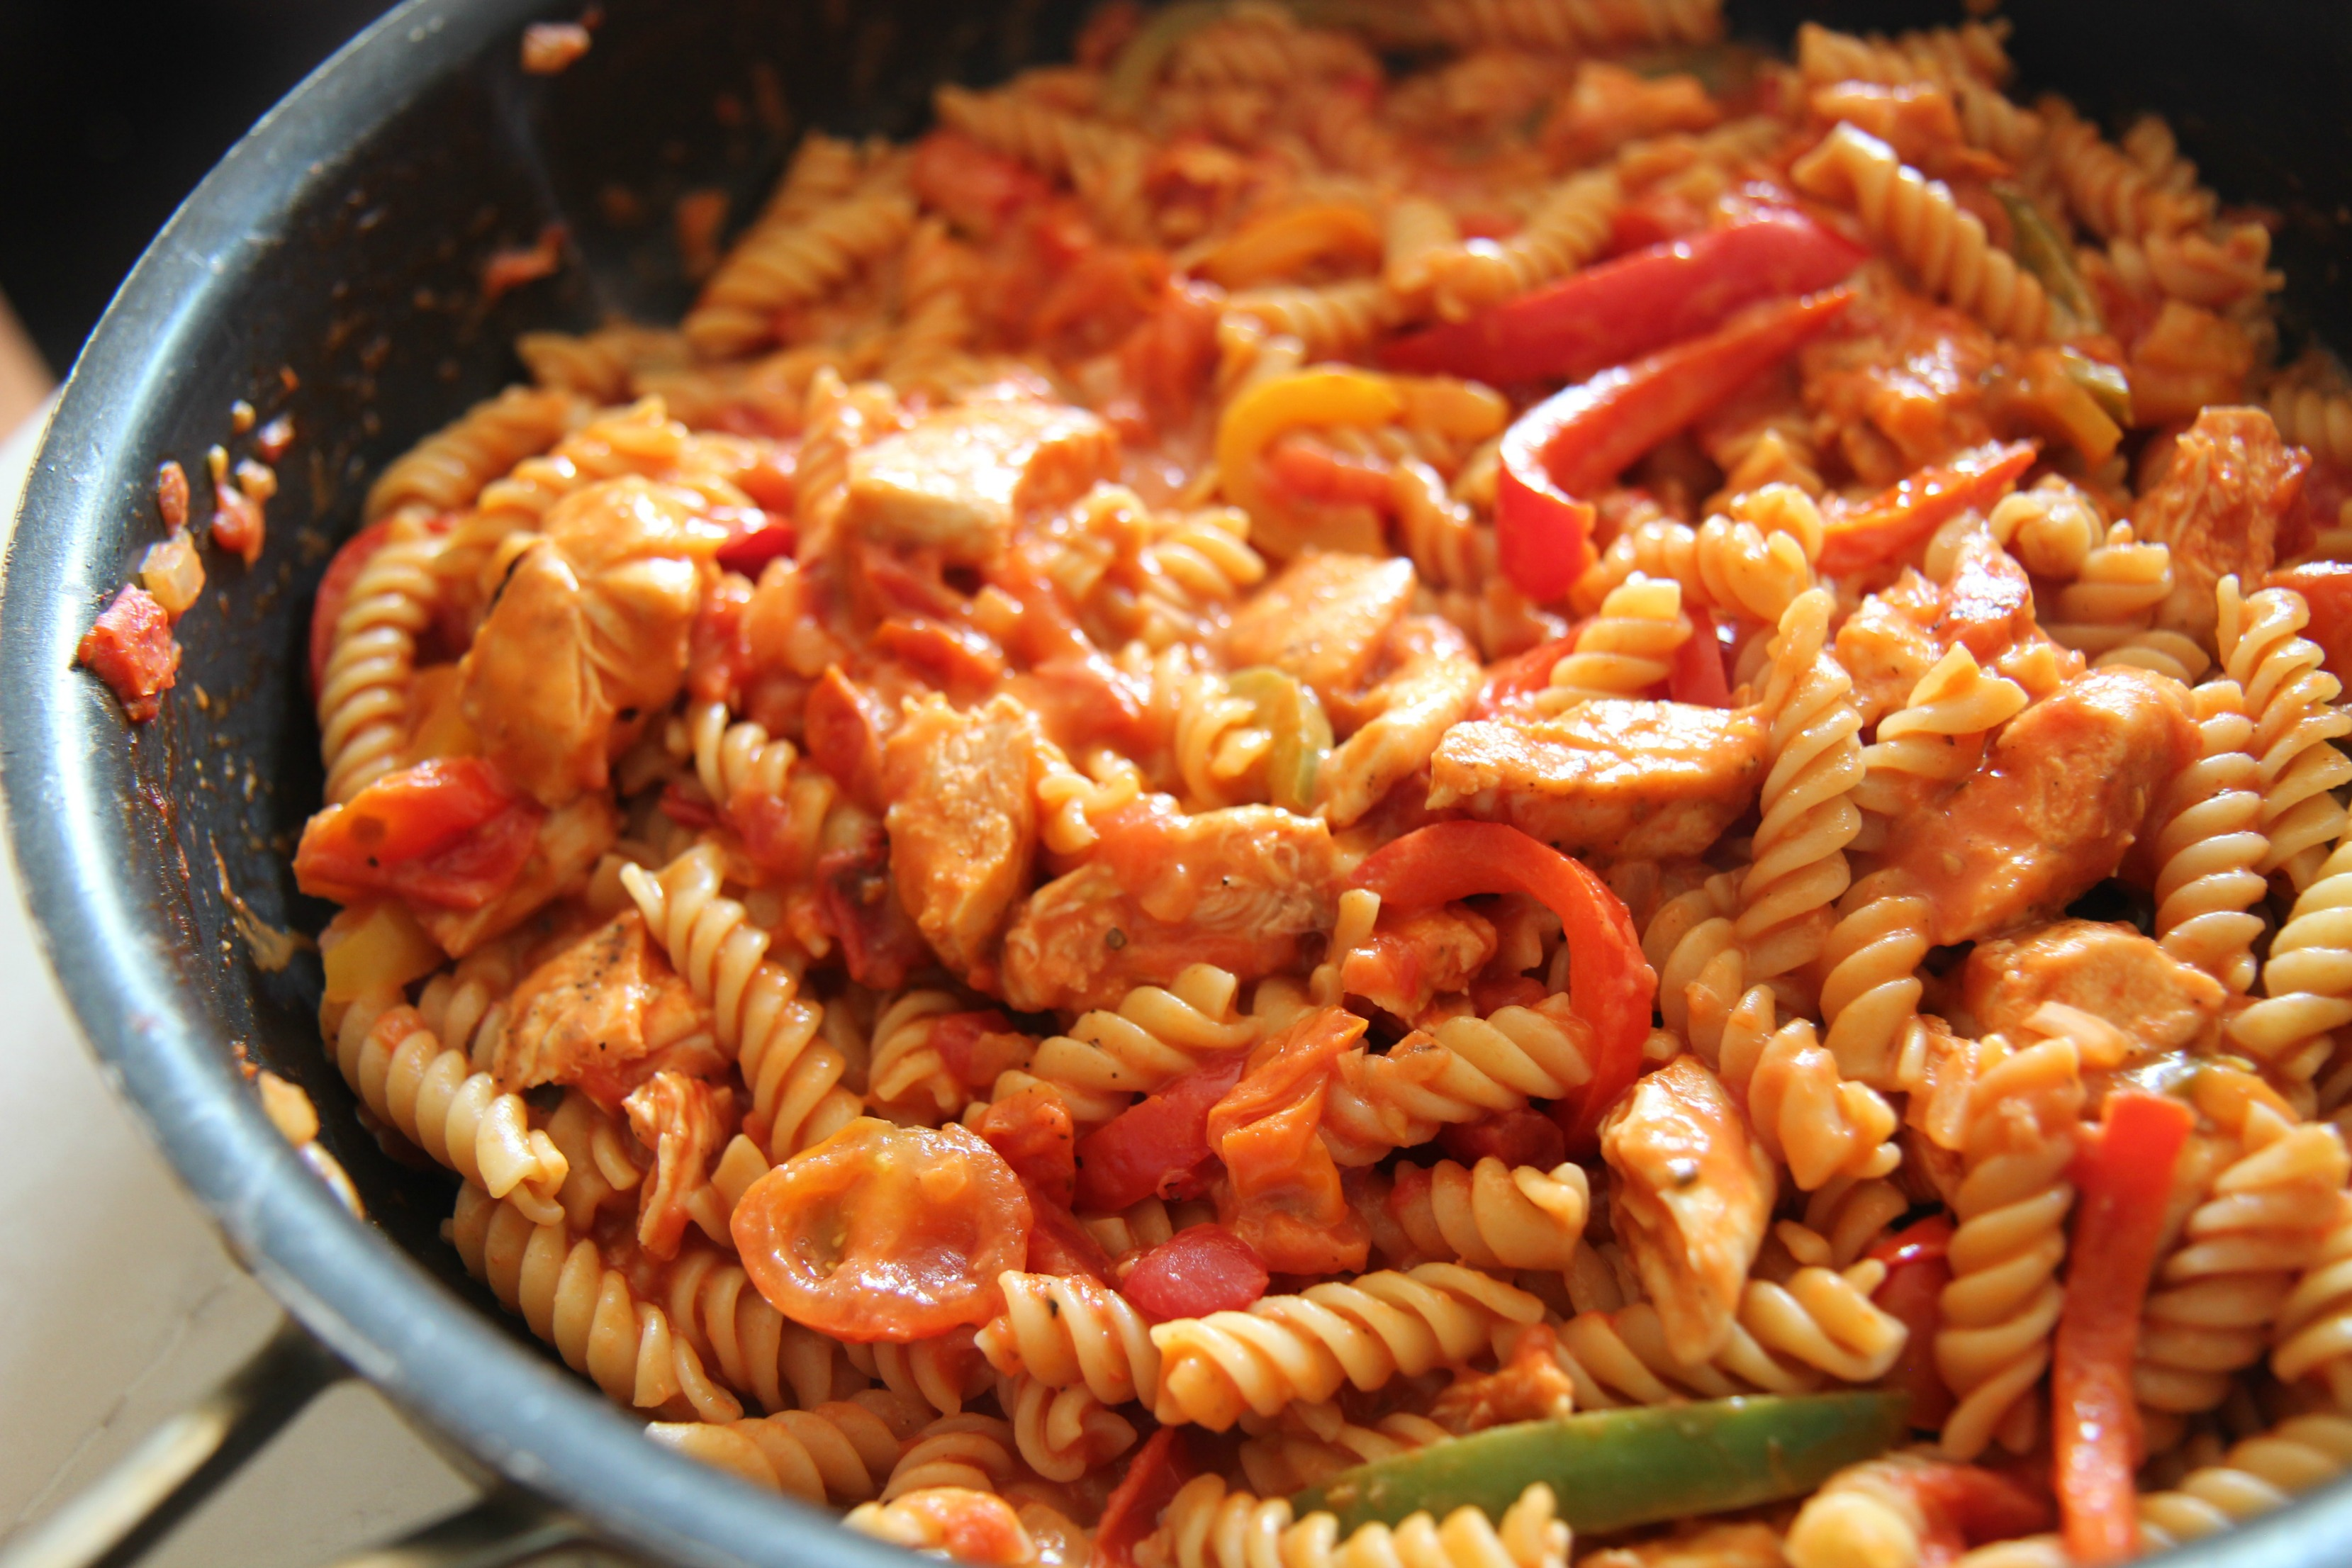 his chicken fajita pasta makes for perfect leftovers.